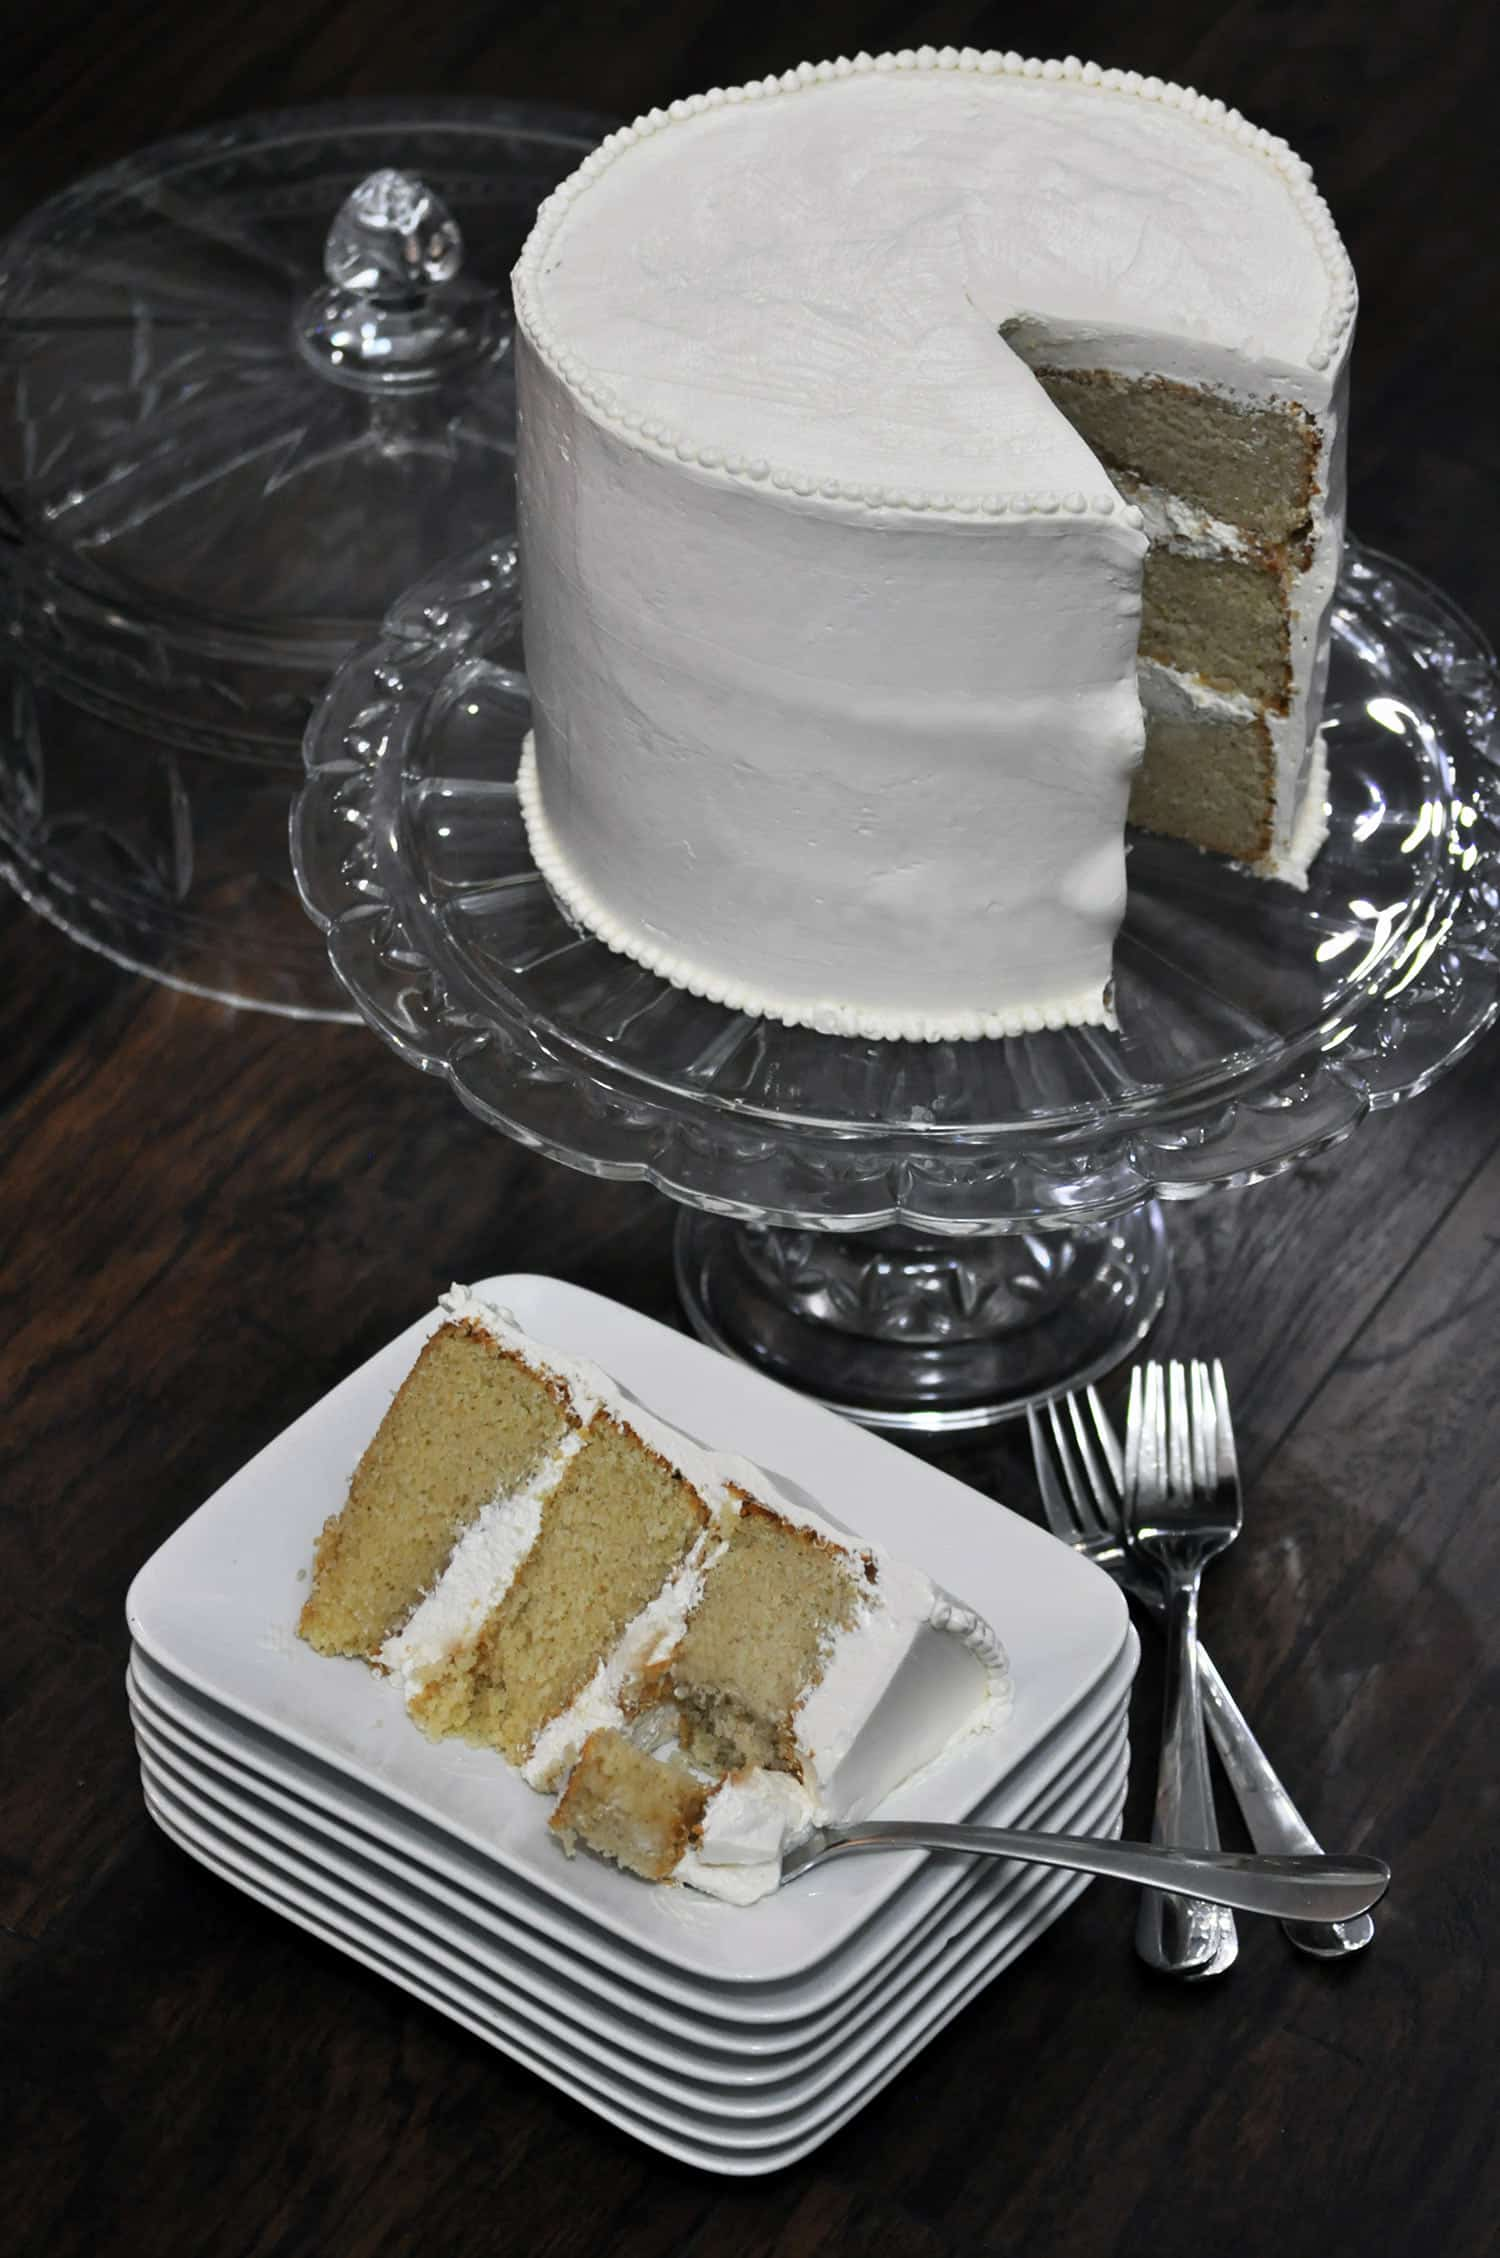 Best Vanilla Cake Recipe Ever Cakes OfBatterDough